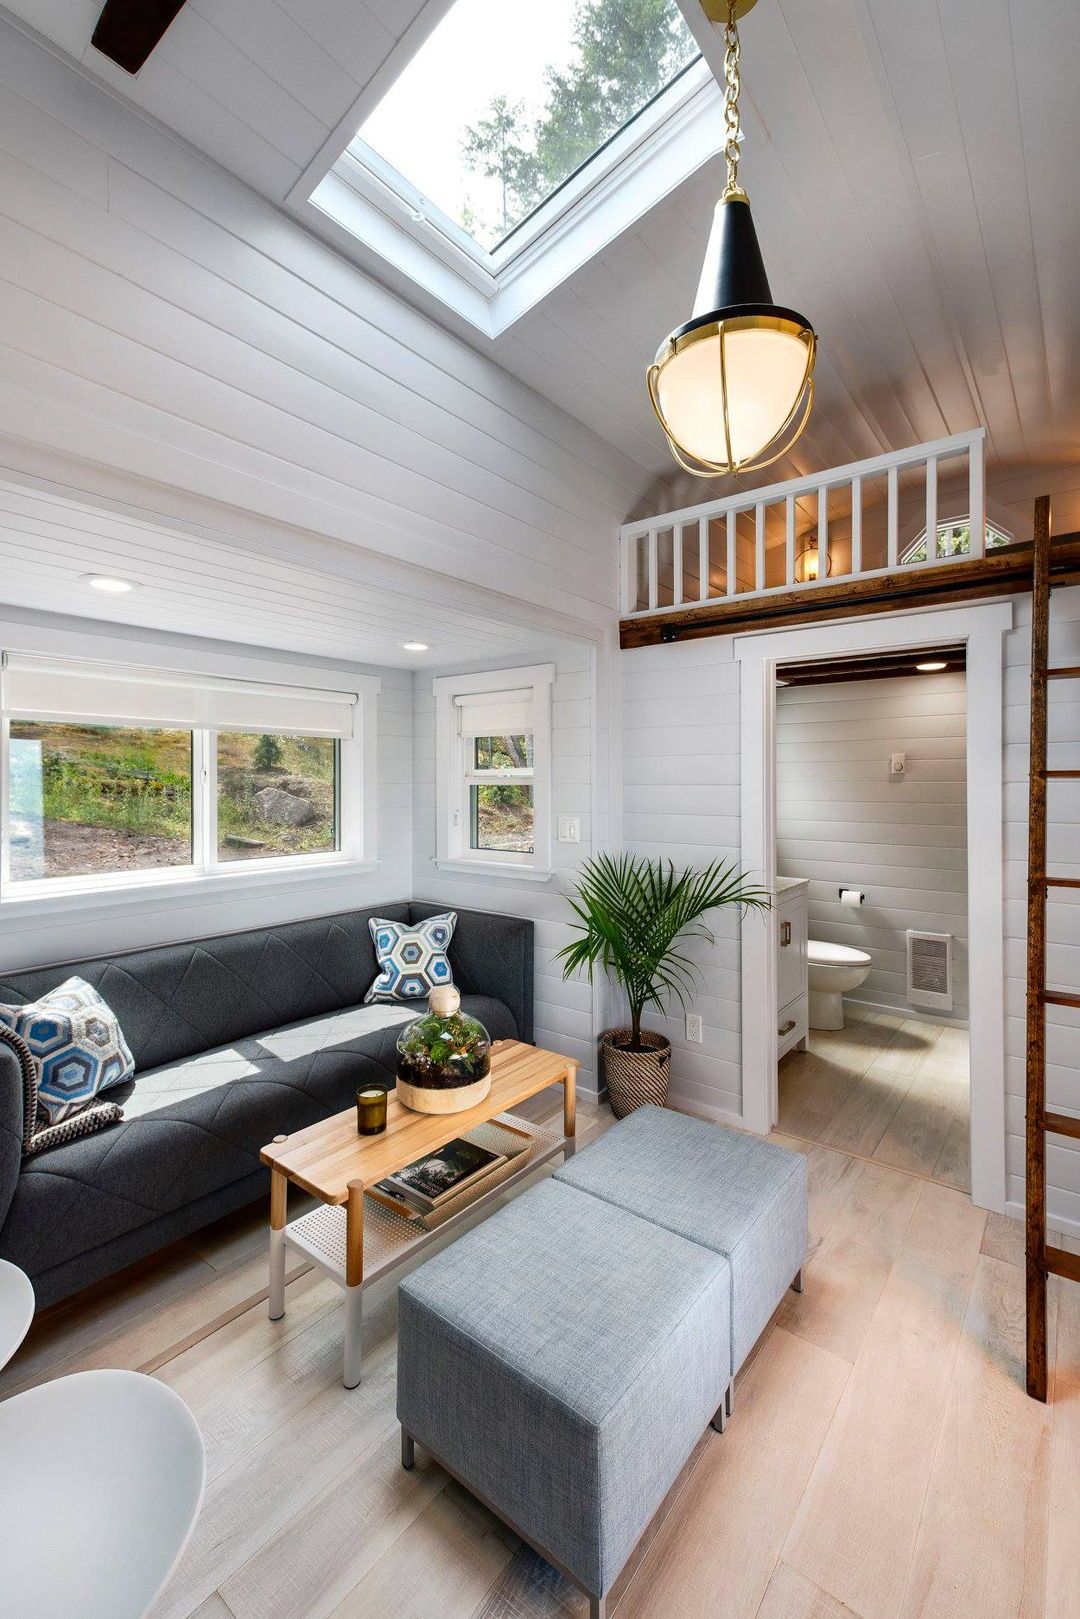 Double Slide Outs By Mint Tiny Homes Tiny House Living Room